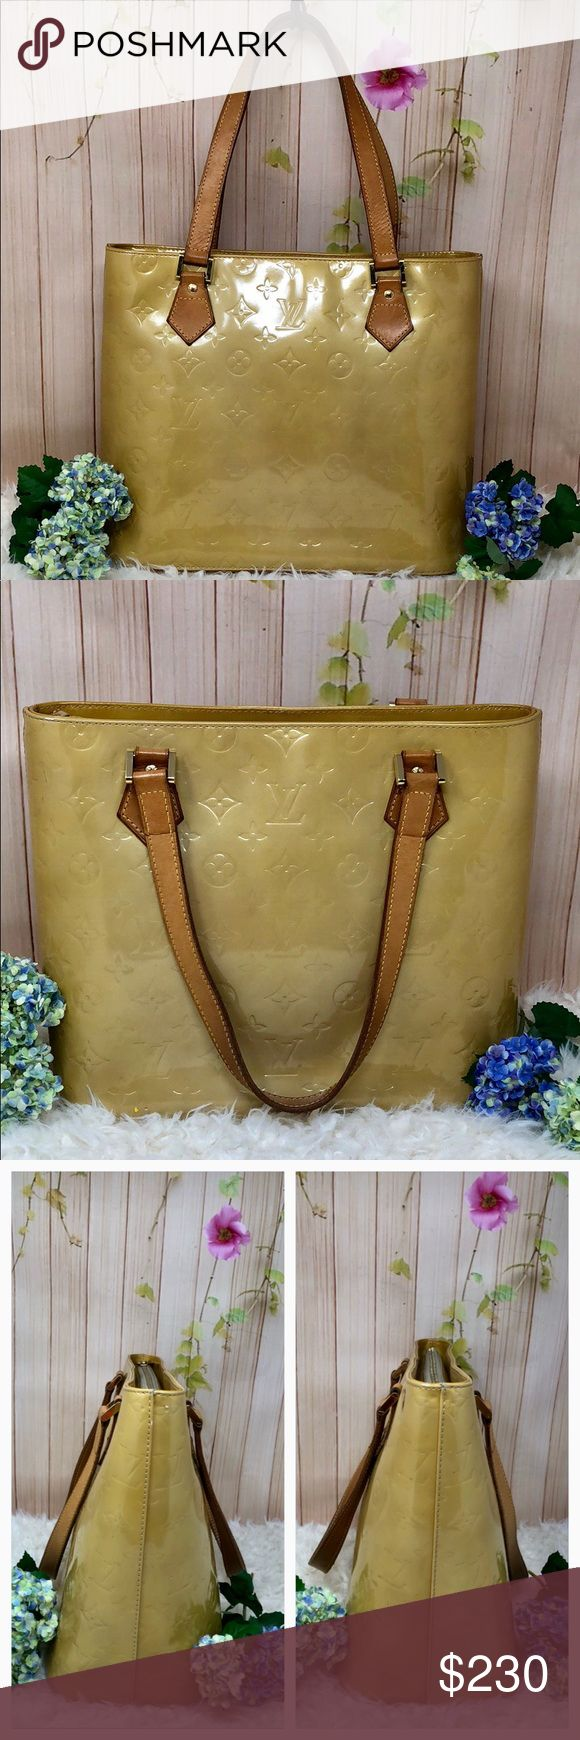 """Authentic Louis Vuitton Vernis Houston Bag The outer canvas is in good condition but there are scratches in the bottom ( pic 8th). Leather trims and handles is good condition. Hardware gold color is good, small pocket and inside the bag is nice and clean. Zipper smooth work. The bag was made in France with date code TH 0070. The dimension 12"""", 9"""", 5.5"""". No trade please Louis Vuitton Bags Totes"""